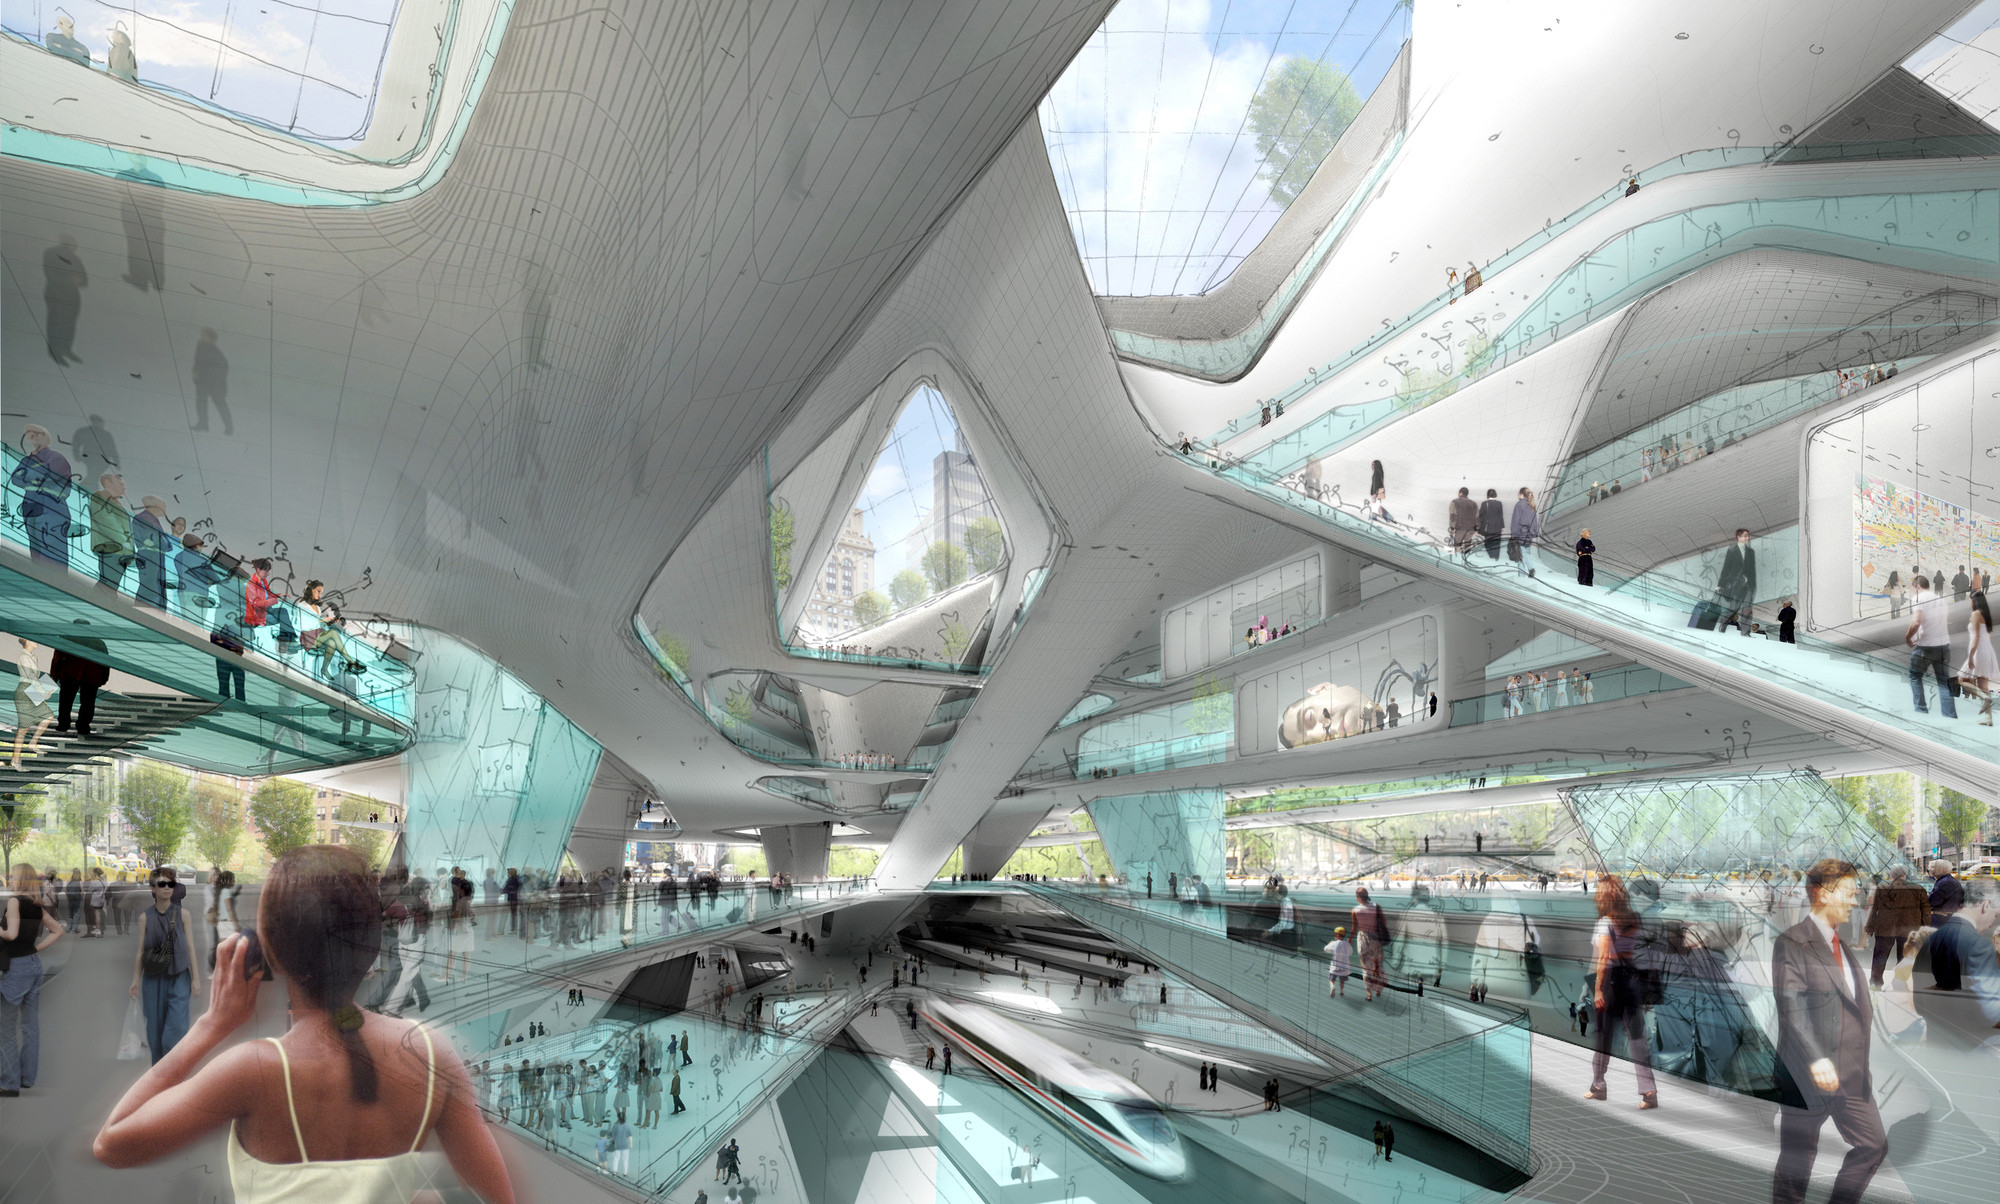 Michael Kimmelman Wins 2014 Brendan Gill Prize, Penn Station, Re-Imagined. Image Courtesy of Diller Scofidio + Renfro